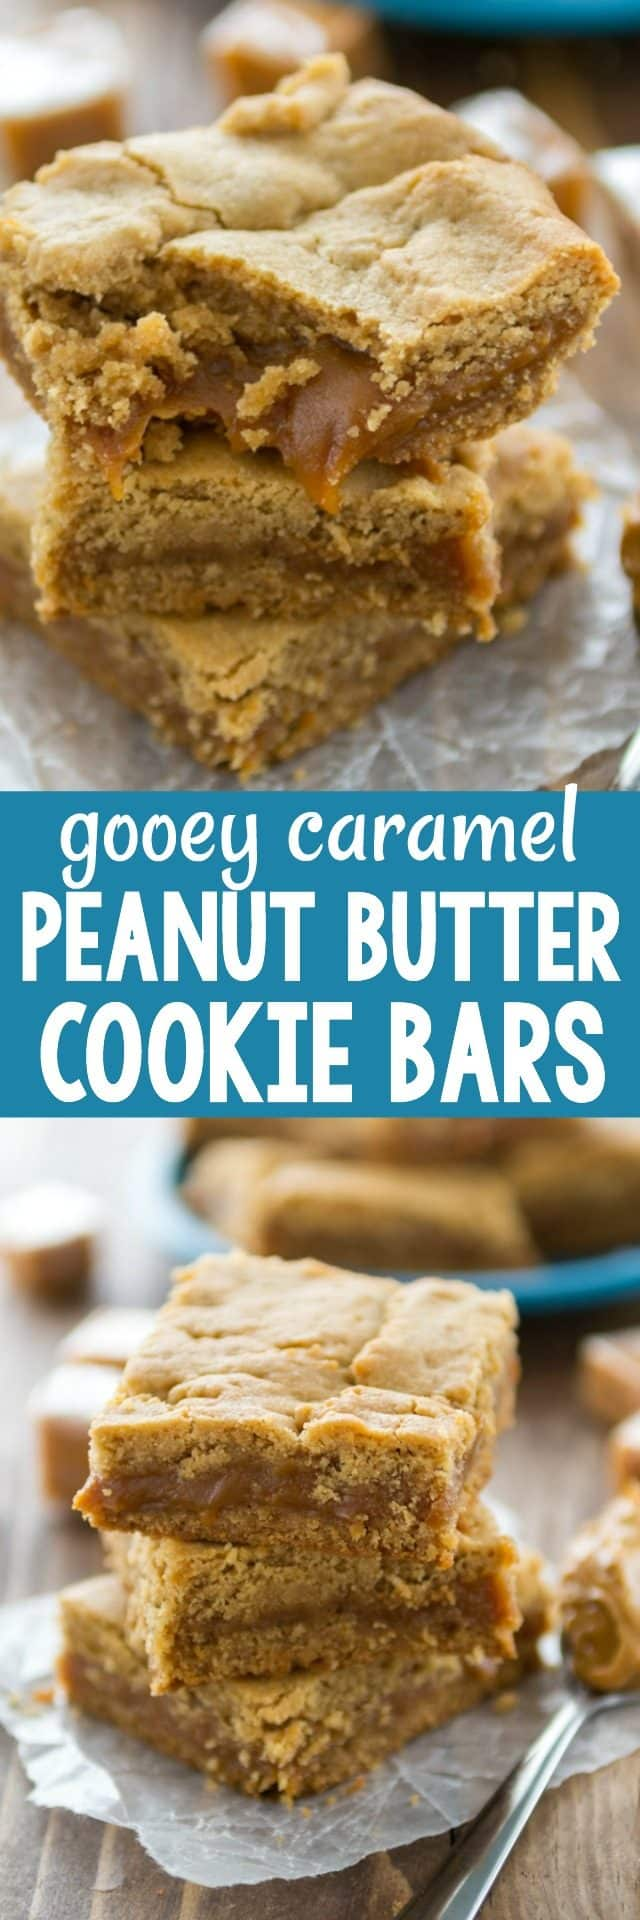 Gooey Caramel Peanut Butter Cookie Bars - a rich indulgent peanut butter cookie filled with gooey soft caramel! These are a dream bar cookie recipe.